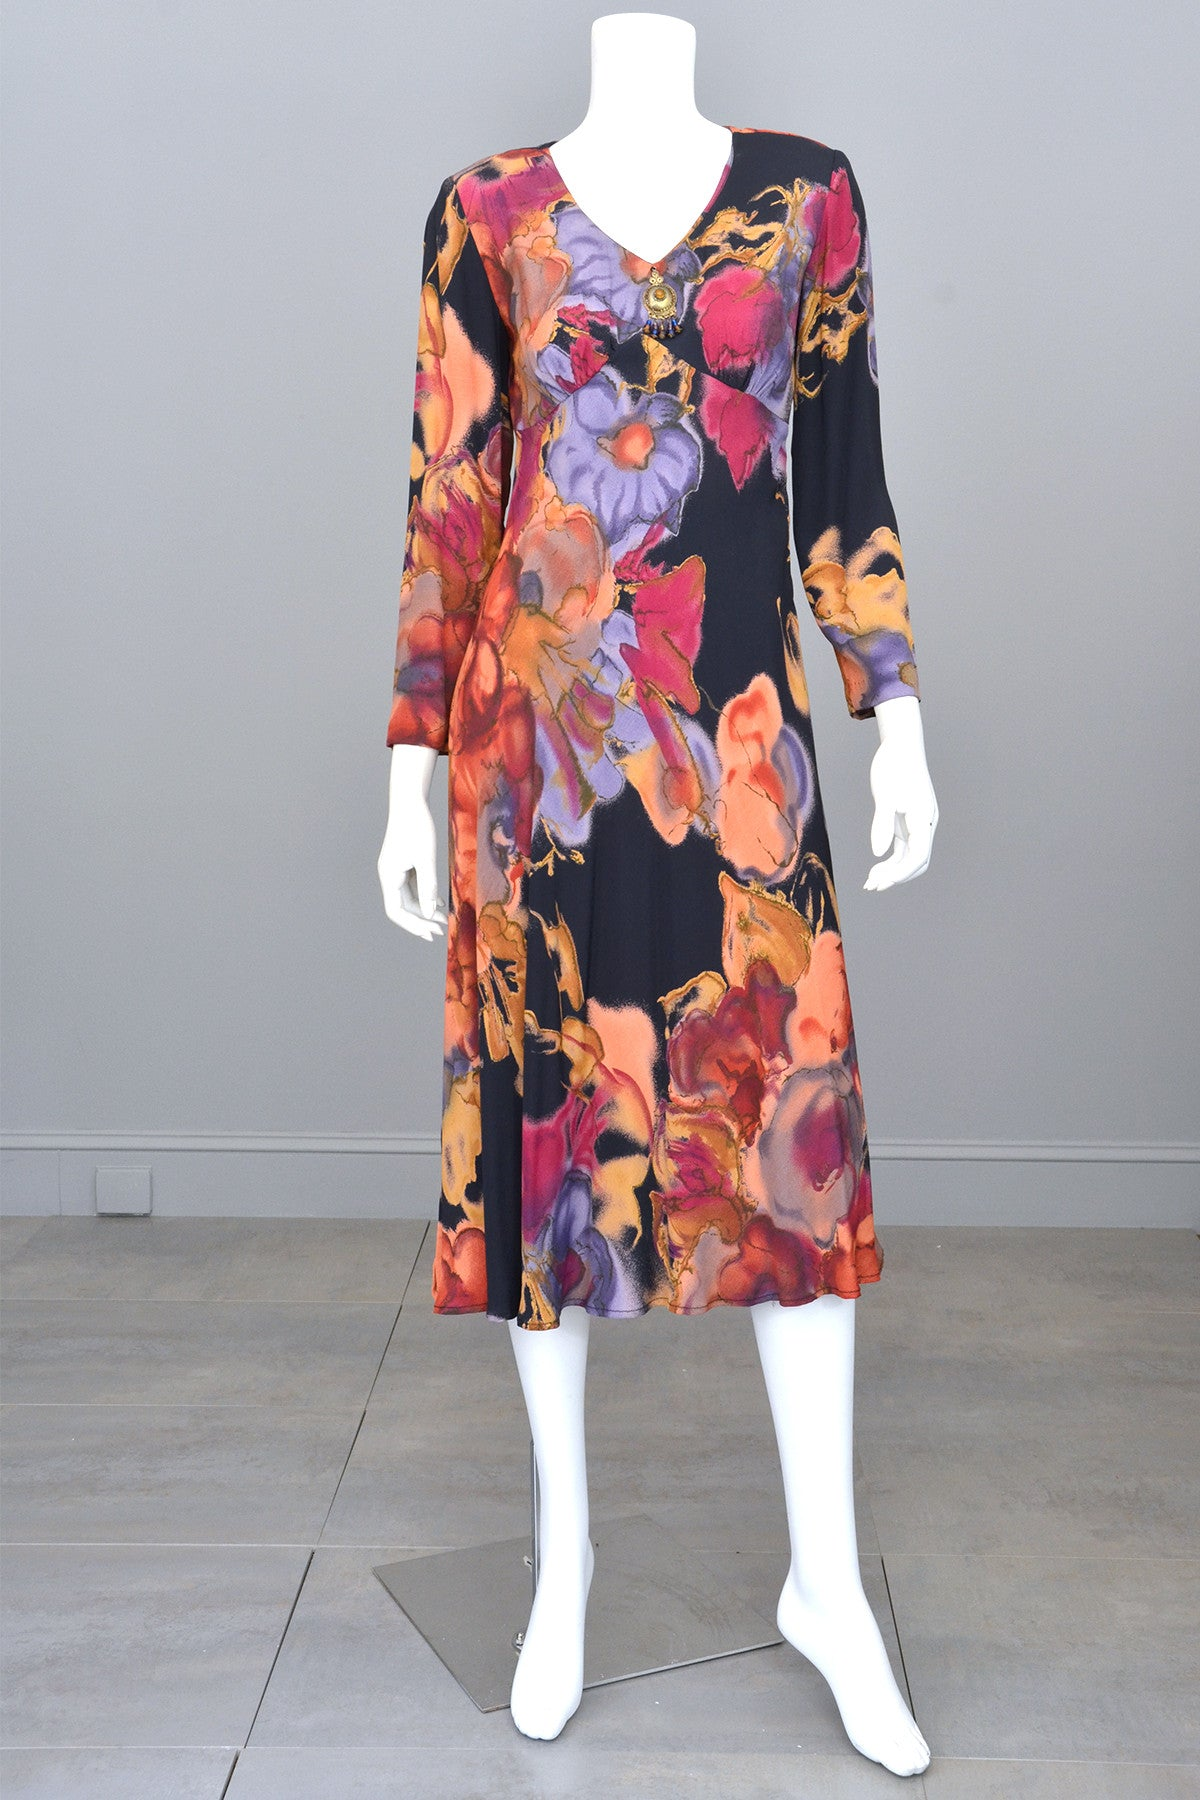 Vintage Carole Little 1990's does 70's Watercolor Floral Print Hippie Gypsy Midi Babydoll Dress